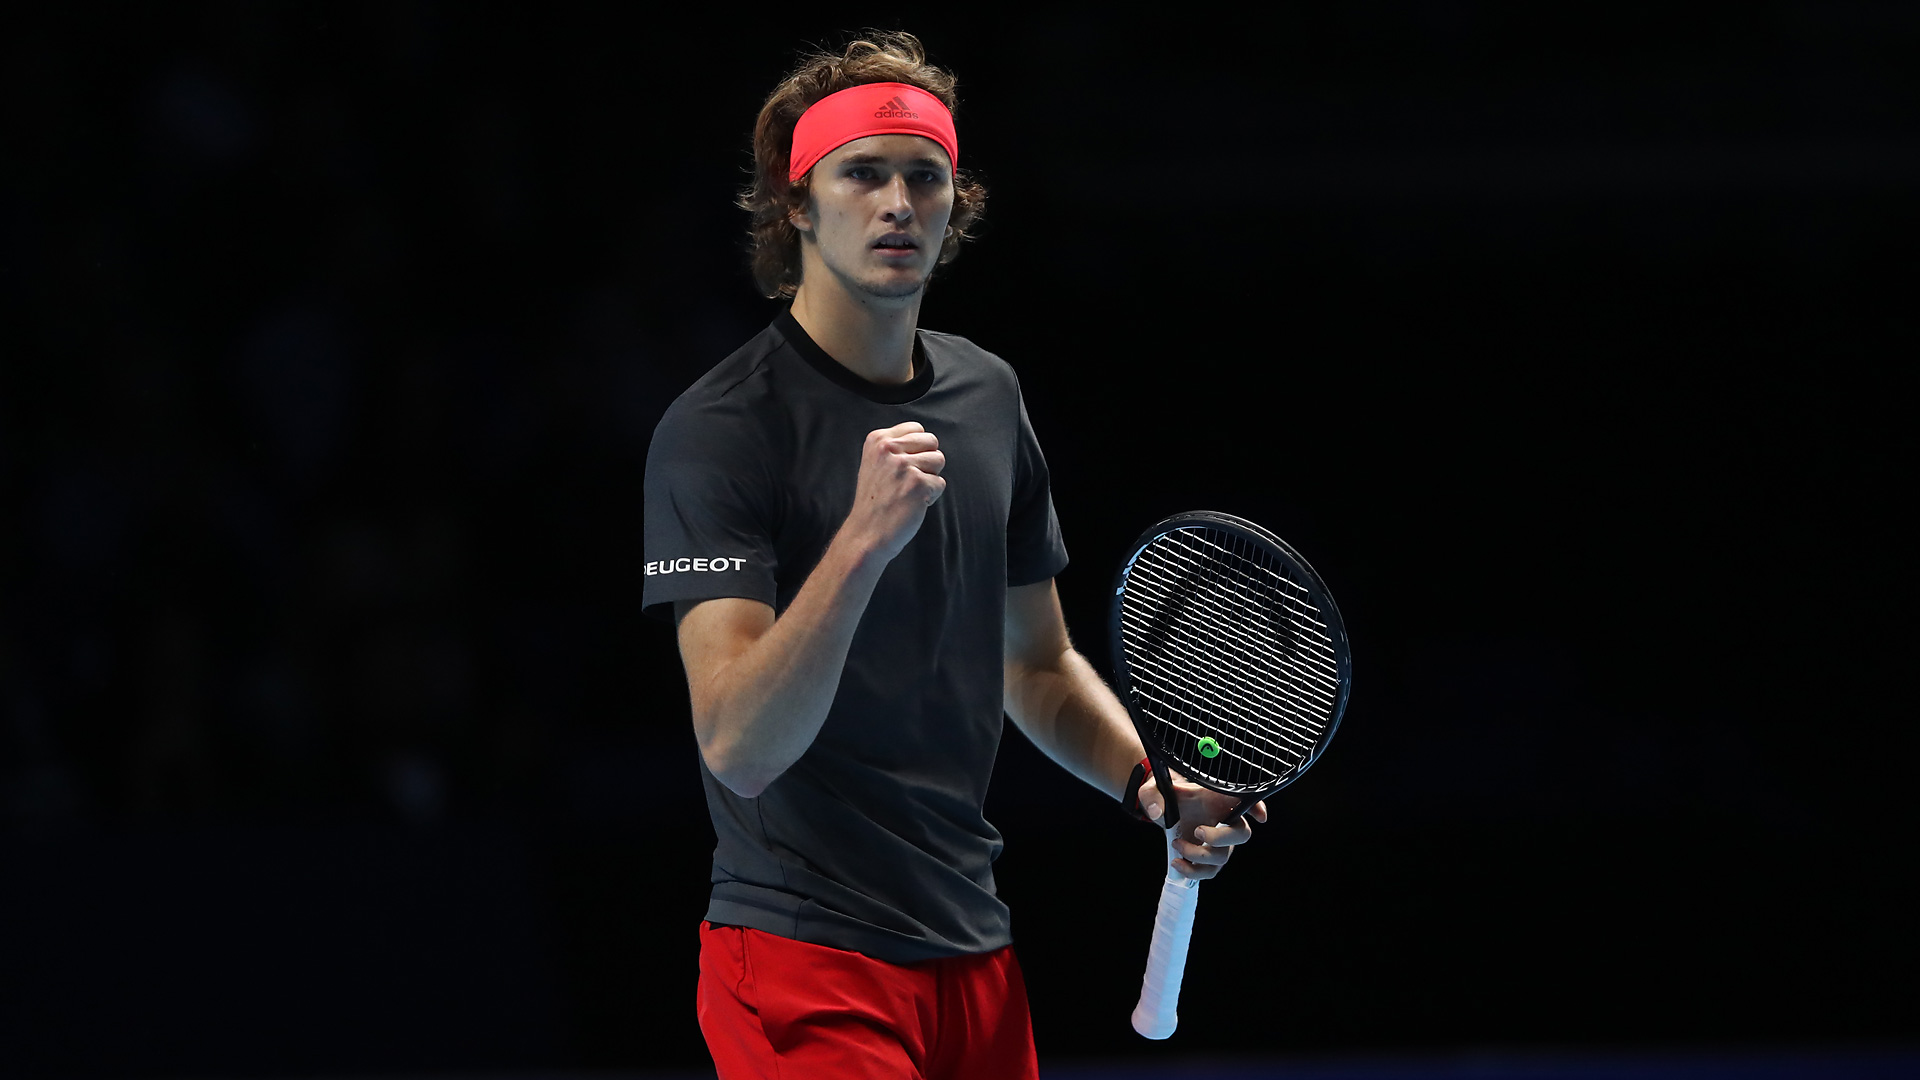 02-Zverev-Nitto-ATP-Finals-2018-Saturday